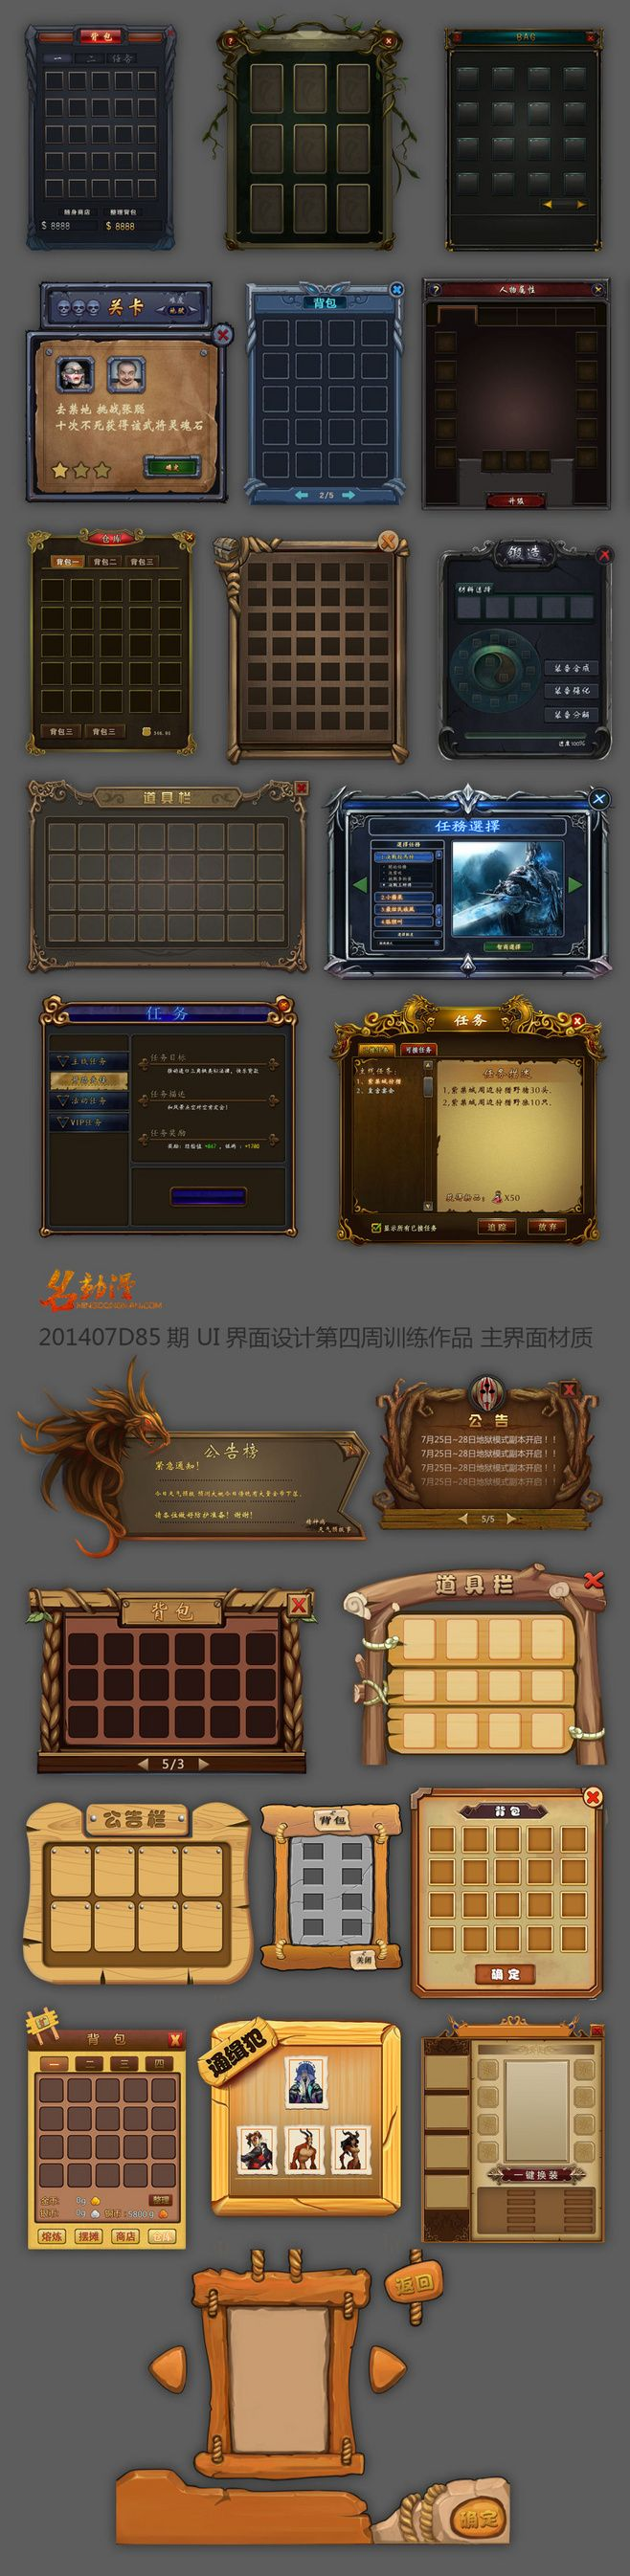 原创作品:游戏UI作品——功能图标,徽章... Game UI | Create your own roleplaying game books w/ RPG Bard: www.rpgbard.com | Pathfinder PFRPG Dungeons and Dragons ADND DND OGL d20 OSR OSRIC Warhammer 40000 40k Fantasy Roleplay WFRP Star Wars Exalted World of Darkness Dragon Age Iron Kingdoms Fate Core System Savage Worlds Shadowrun Dungeon Crawl Classics DCC Call of Cthulhu CoC Basic Role Playing BRP Traveller Battletech The One Ring TOR fantasy science fiction horror